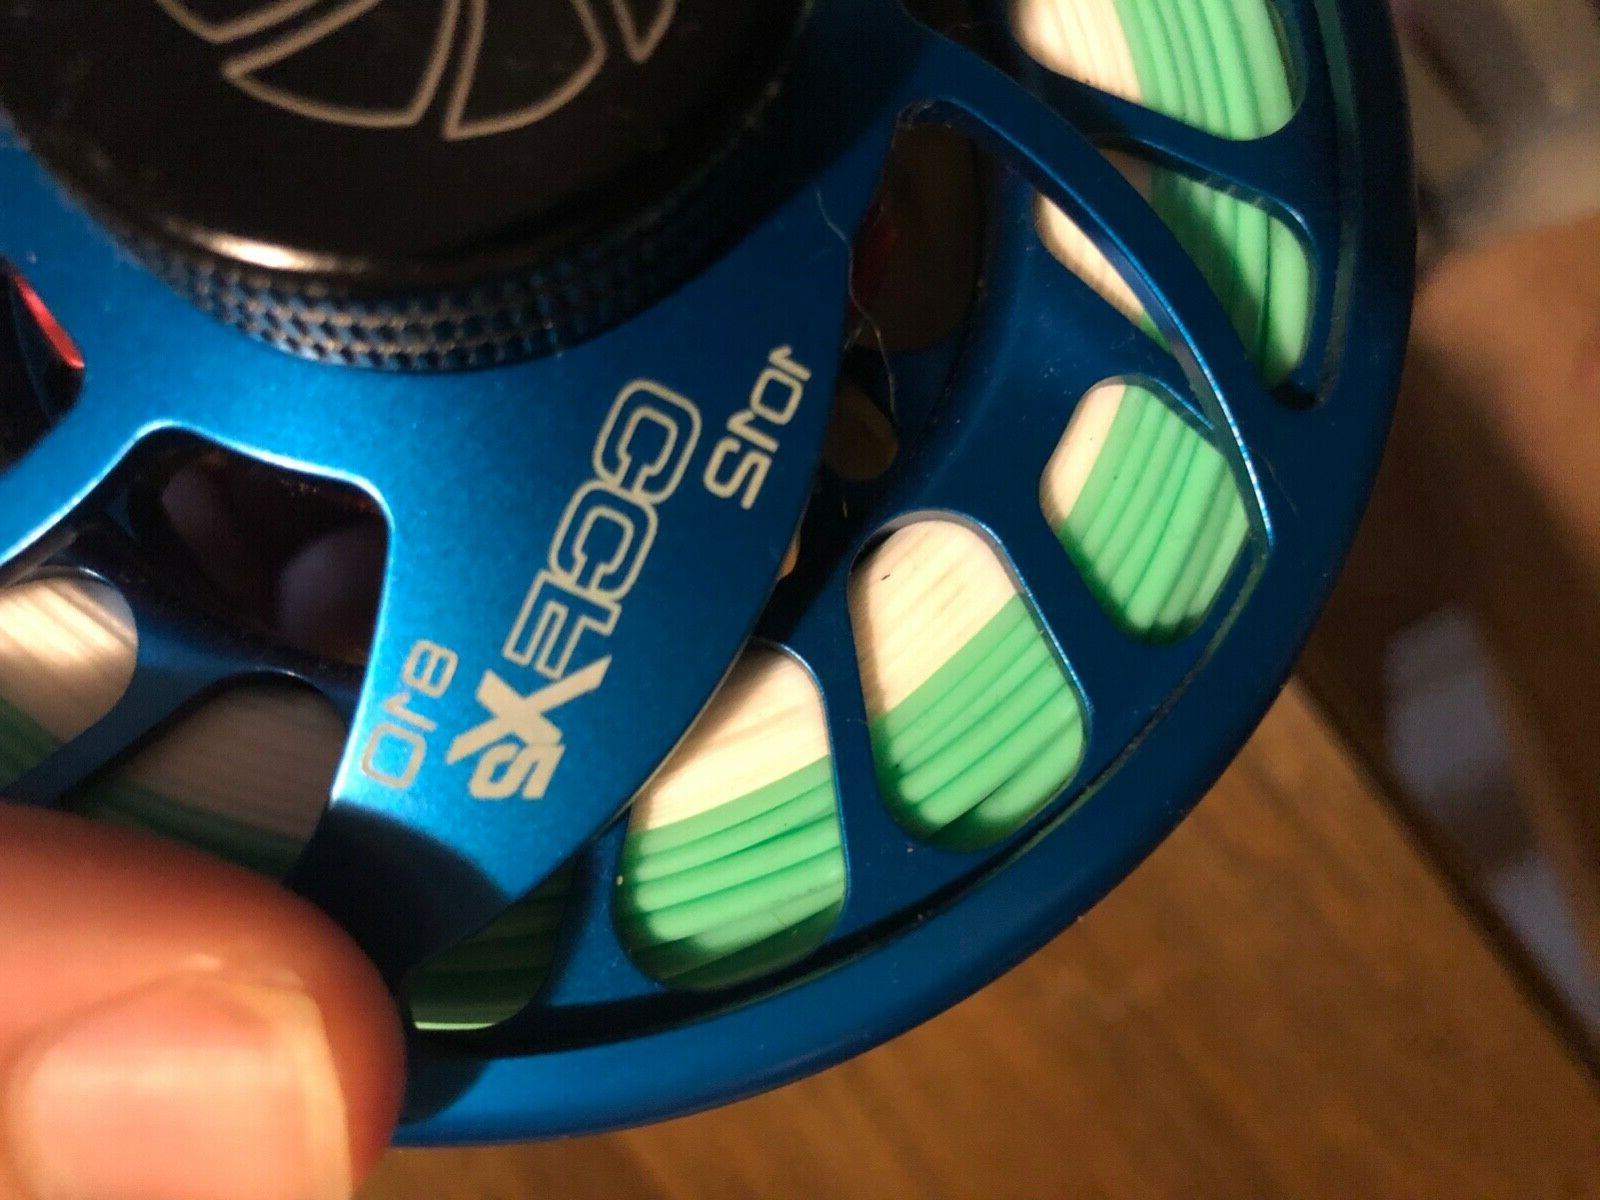 NEW NAUTILUS CCF-X2 10/12 wt Reel With Fly Line